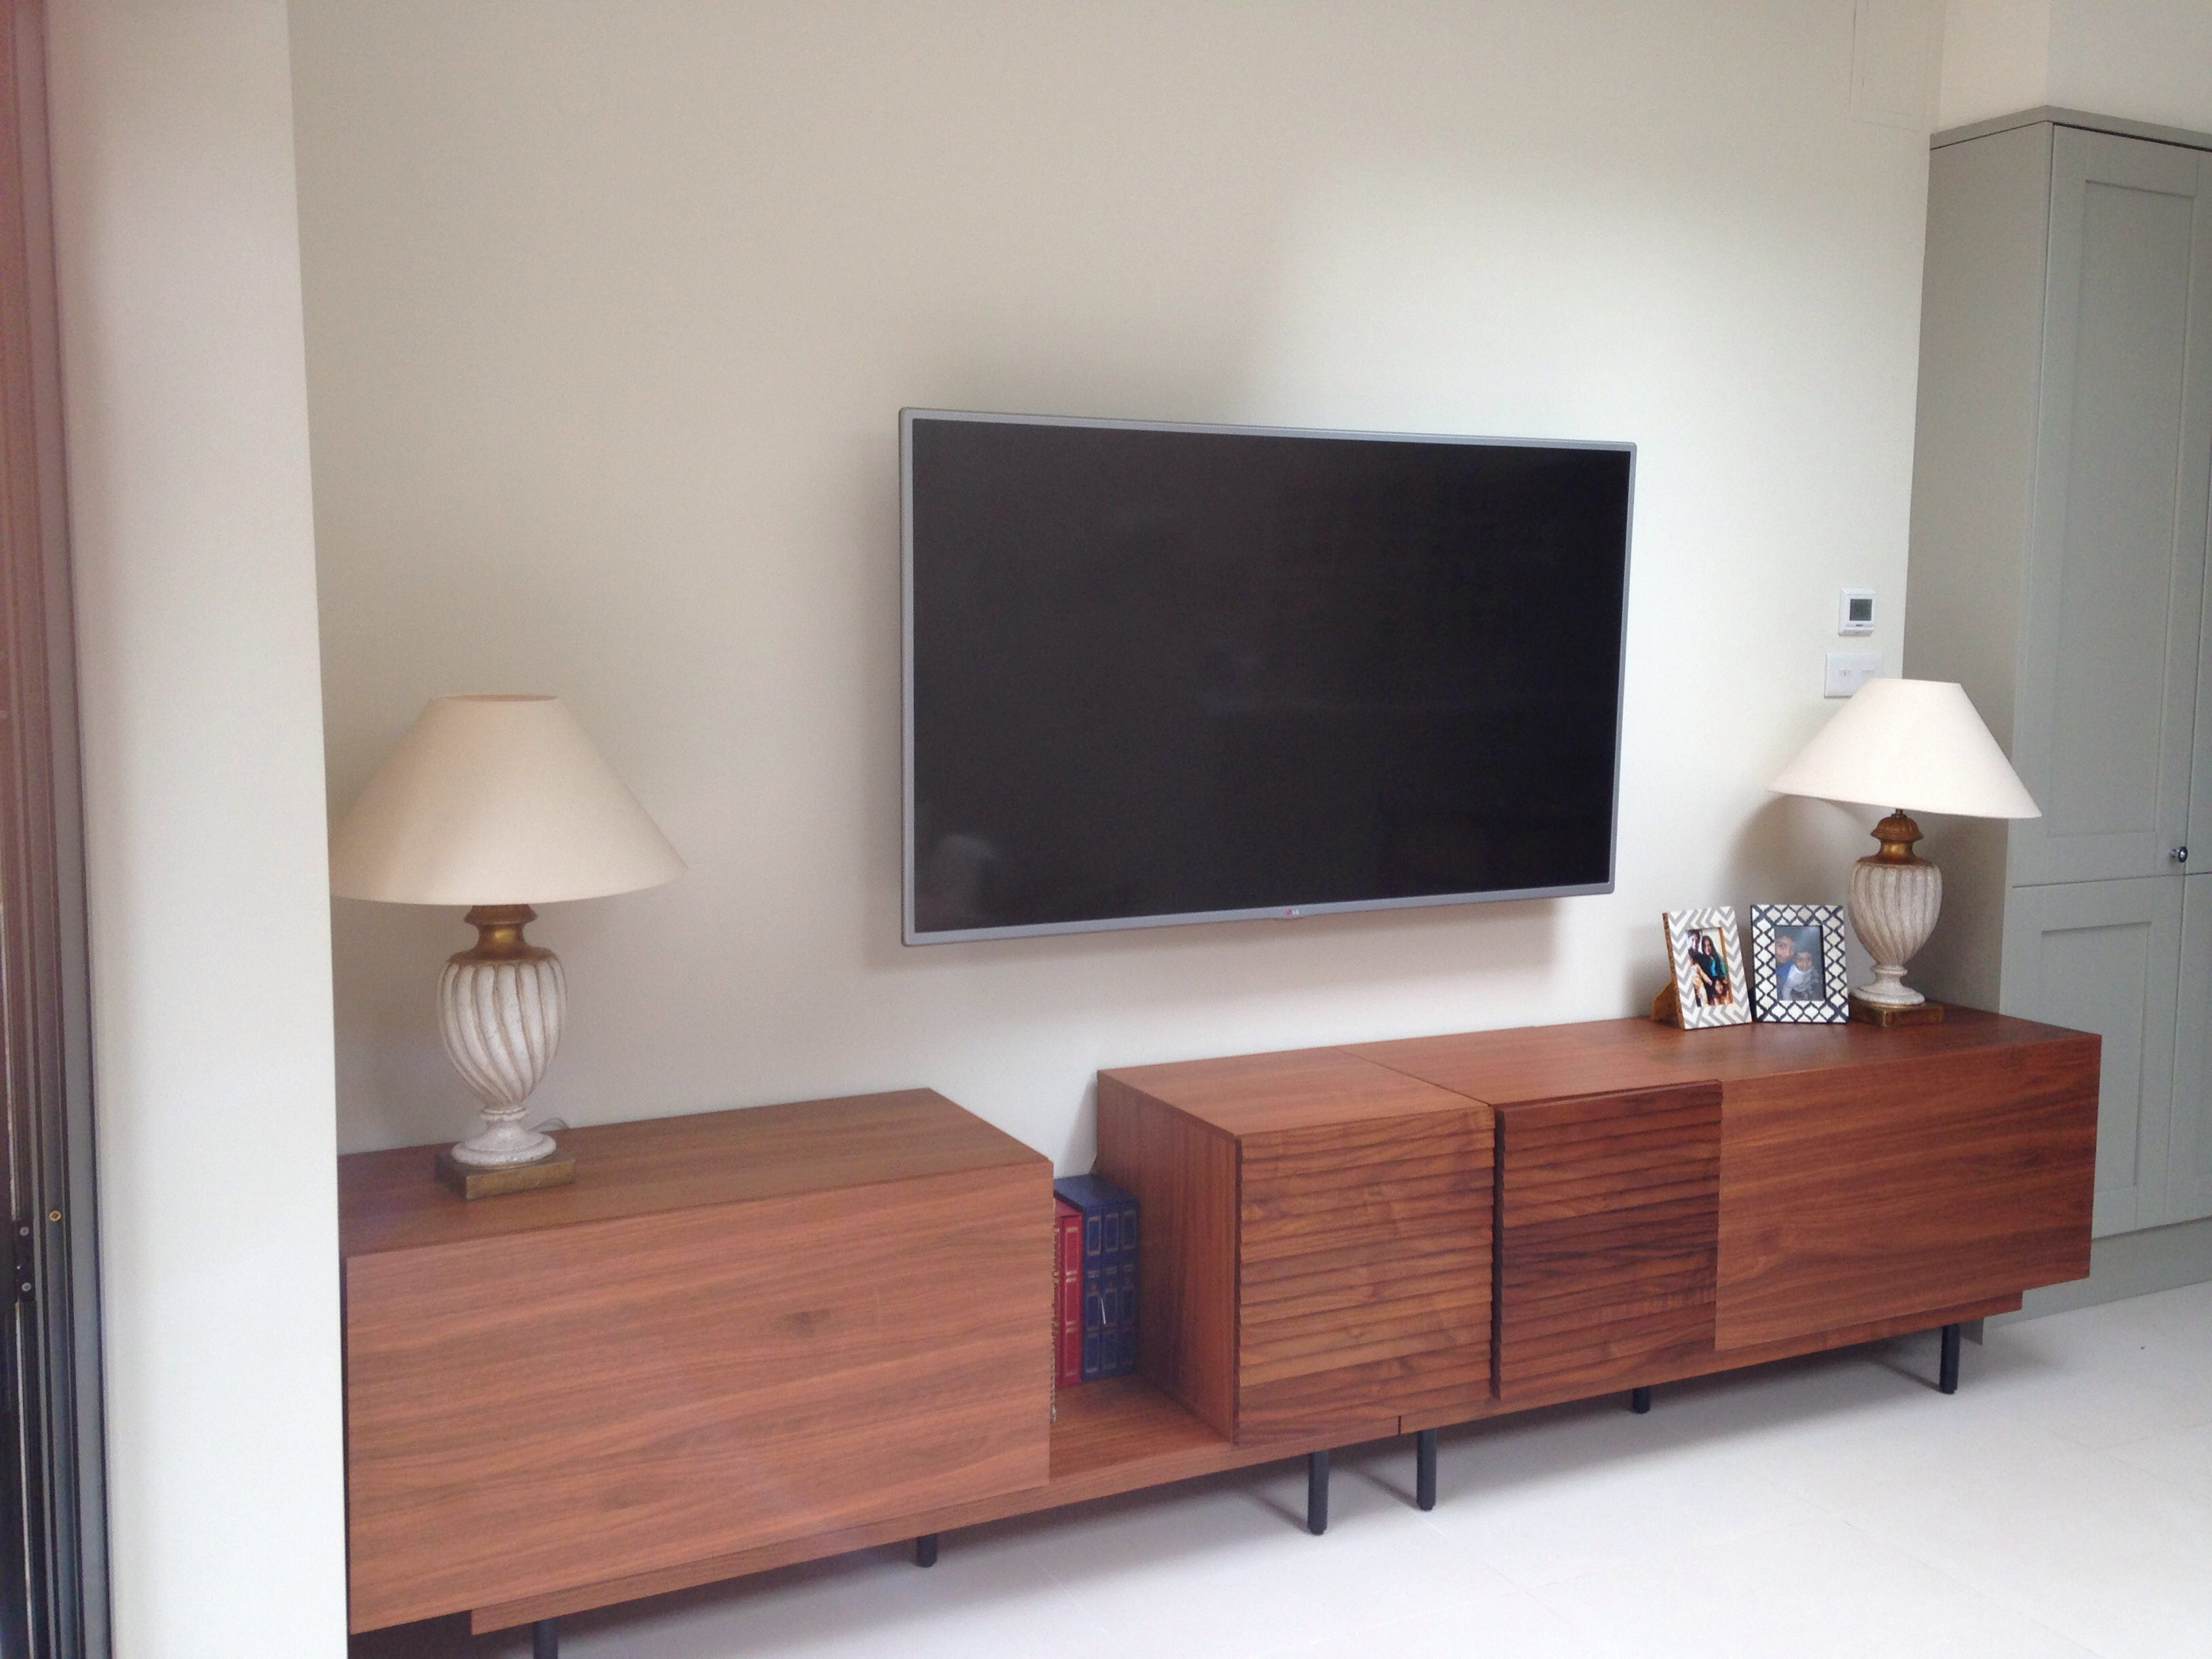 habitat bocksey arranged as kitchen tv stand family room - Meuble Tv Bibliotheque Habitat